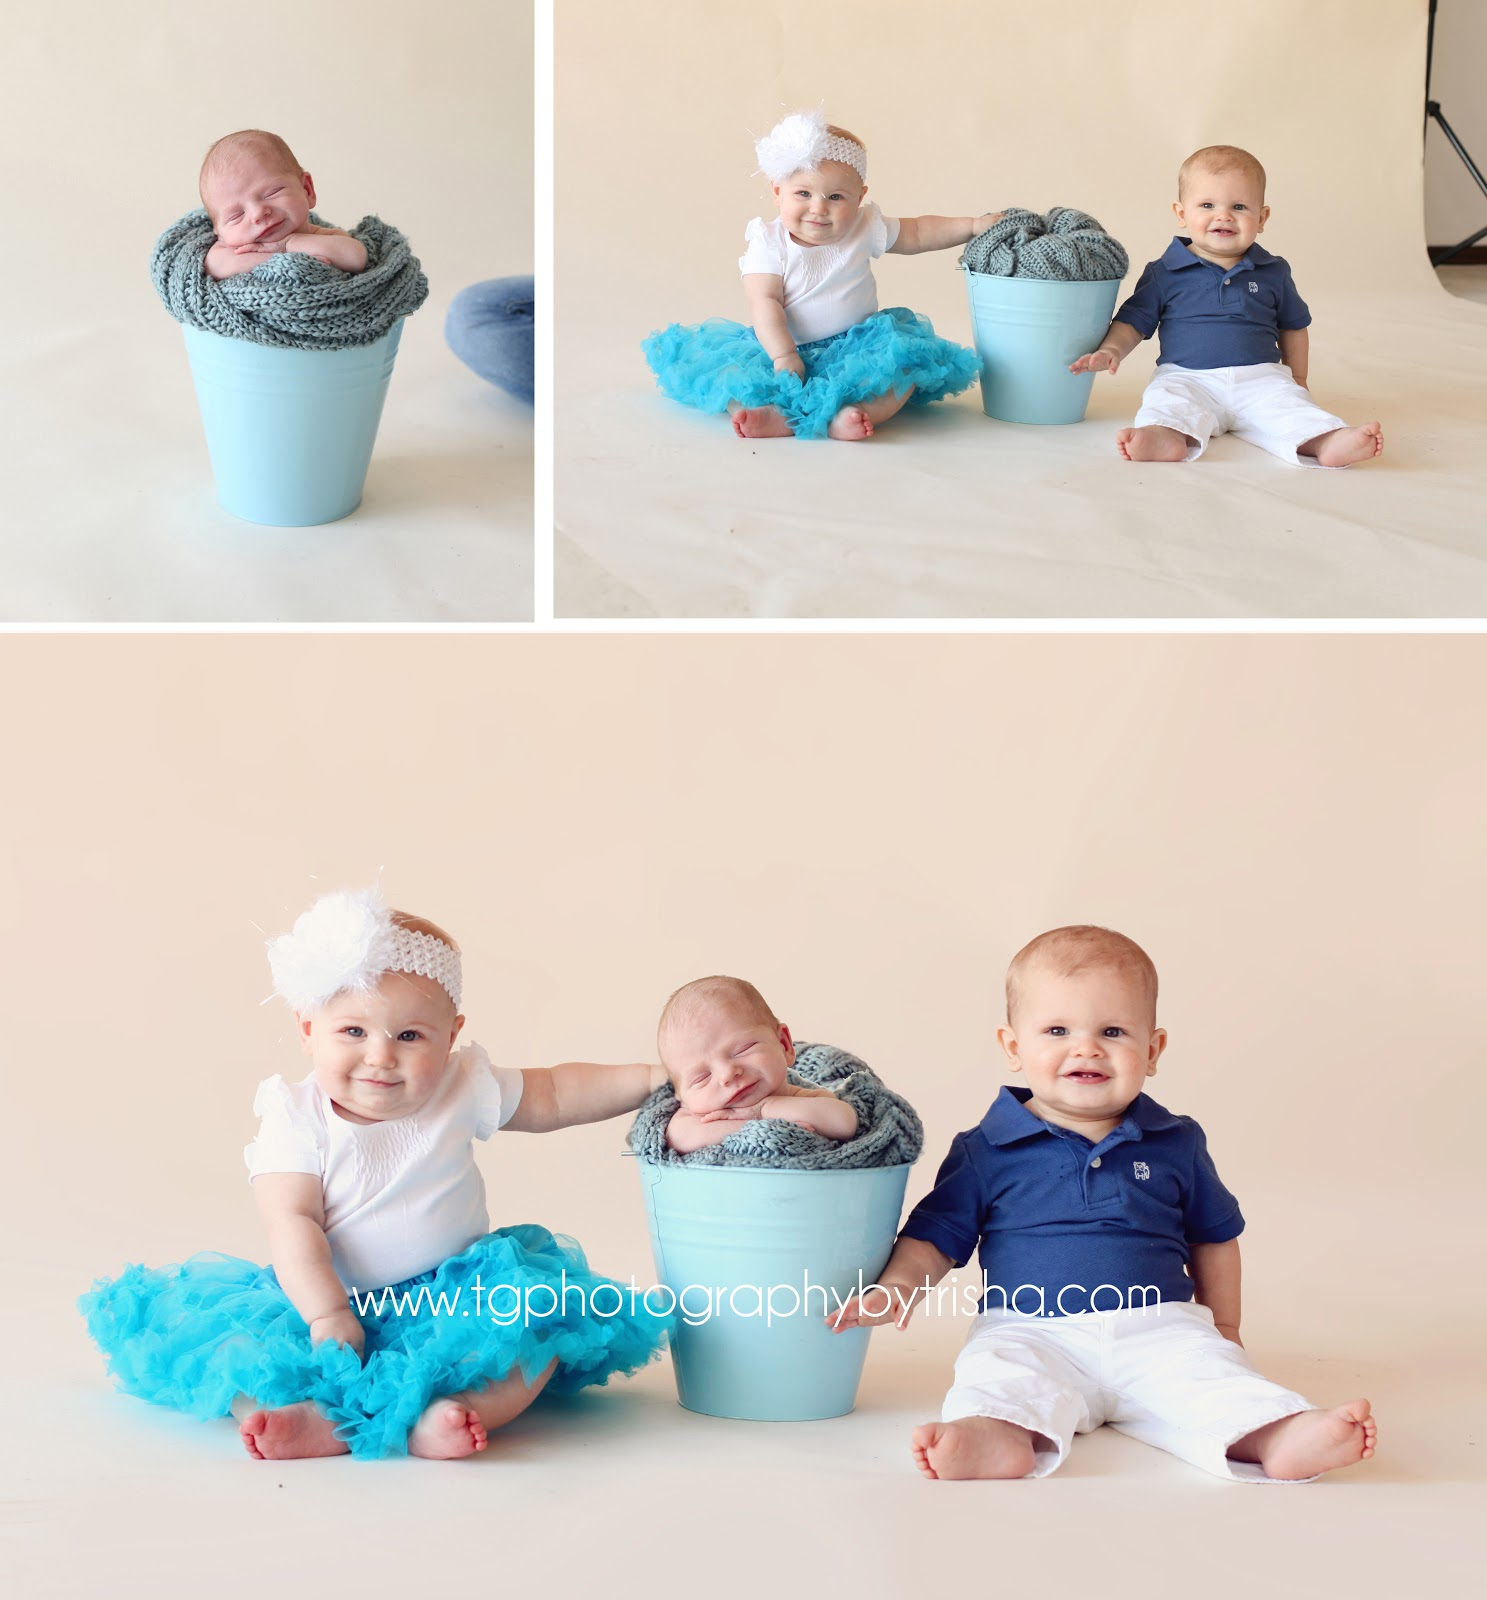 Newborn Pictures with Siblings http://www.tgphotographyunedited.com/2013/04/posing-newborn-babies-with-siblings.html